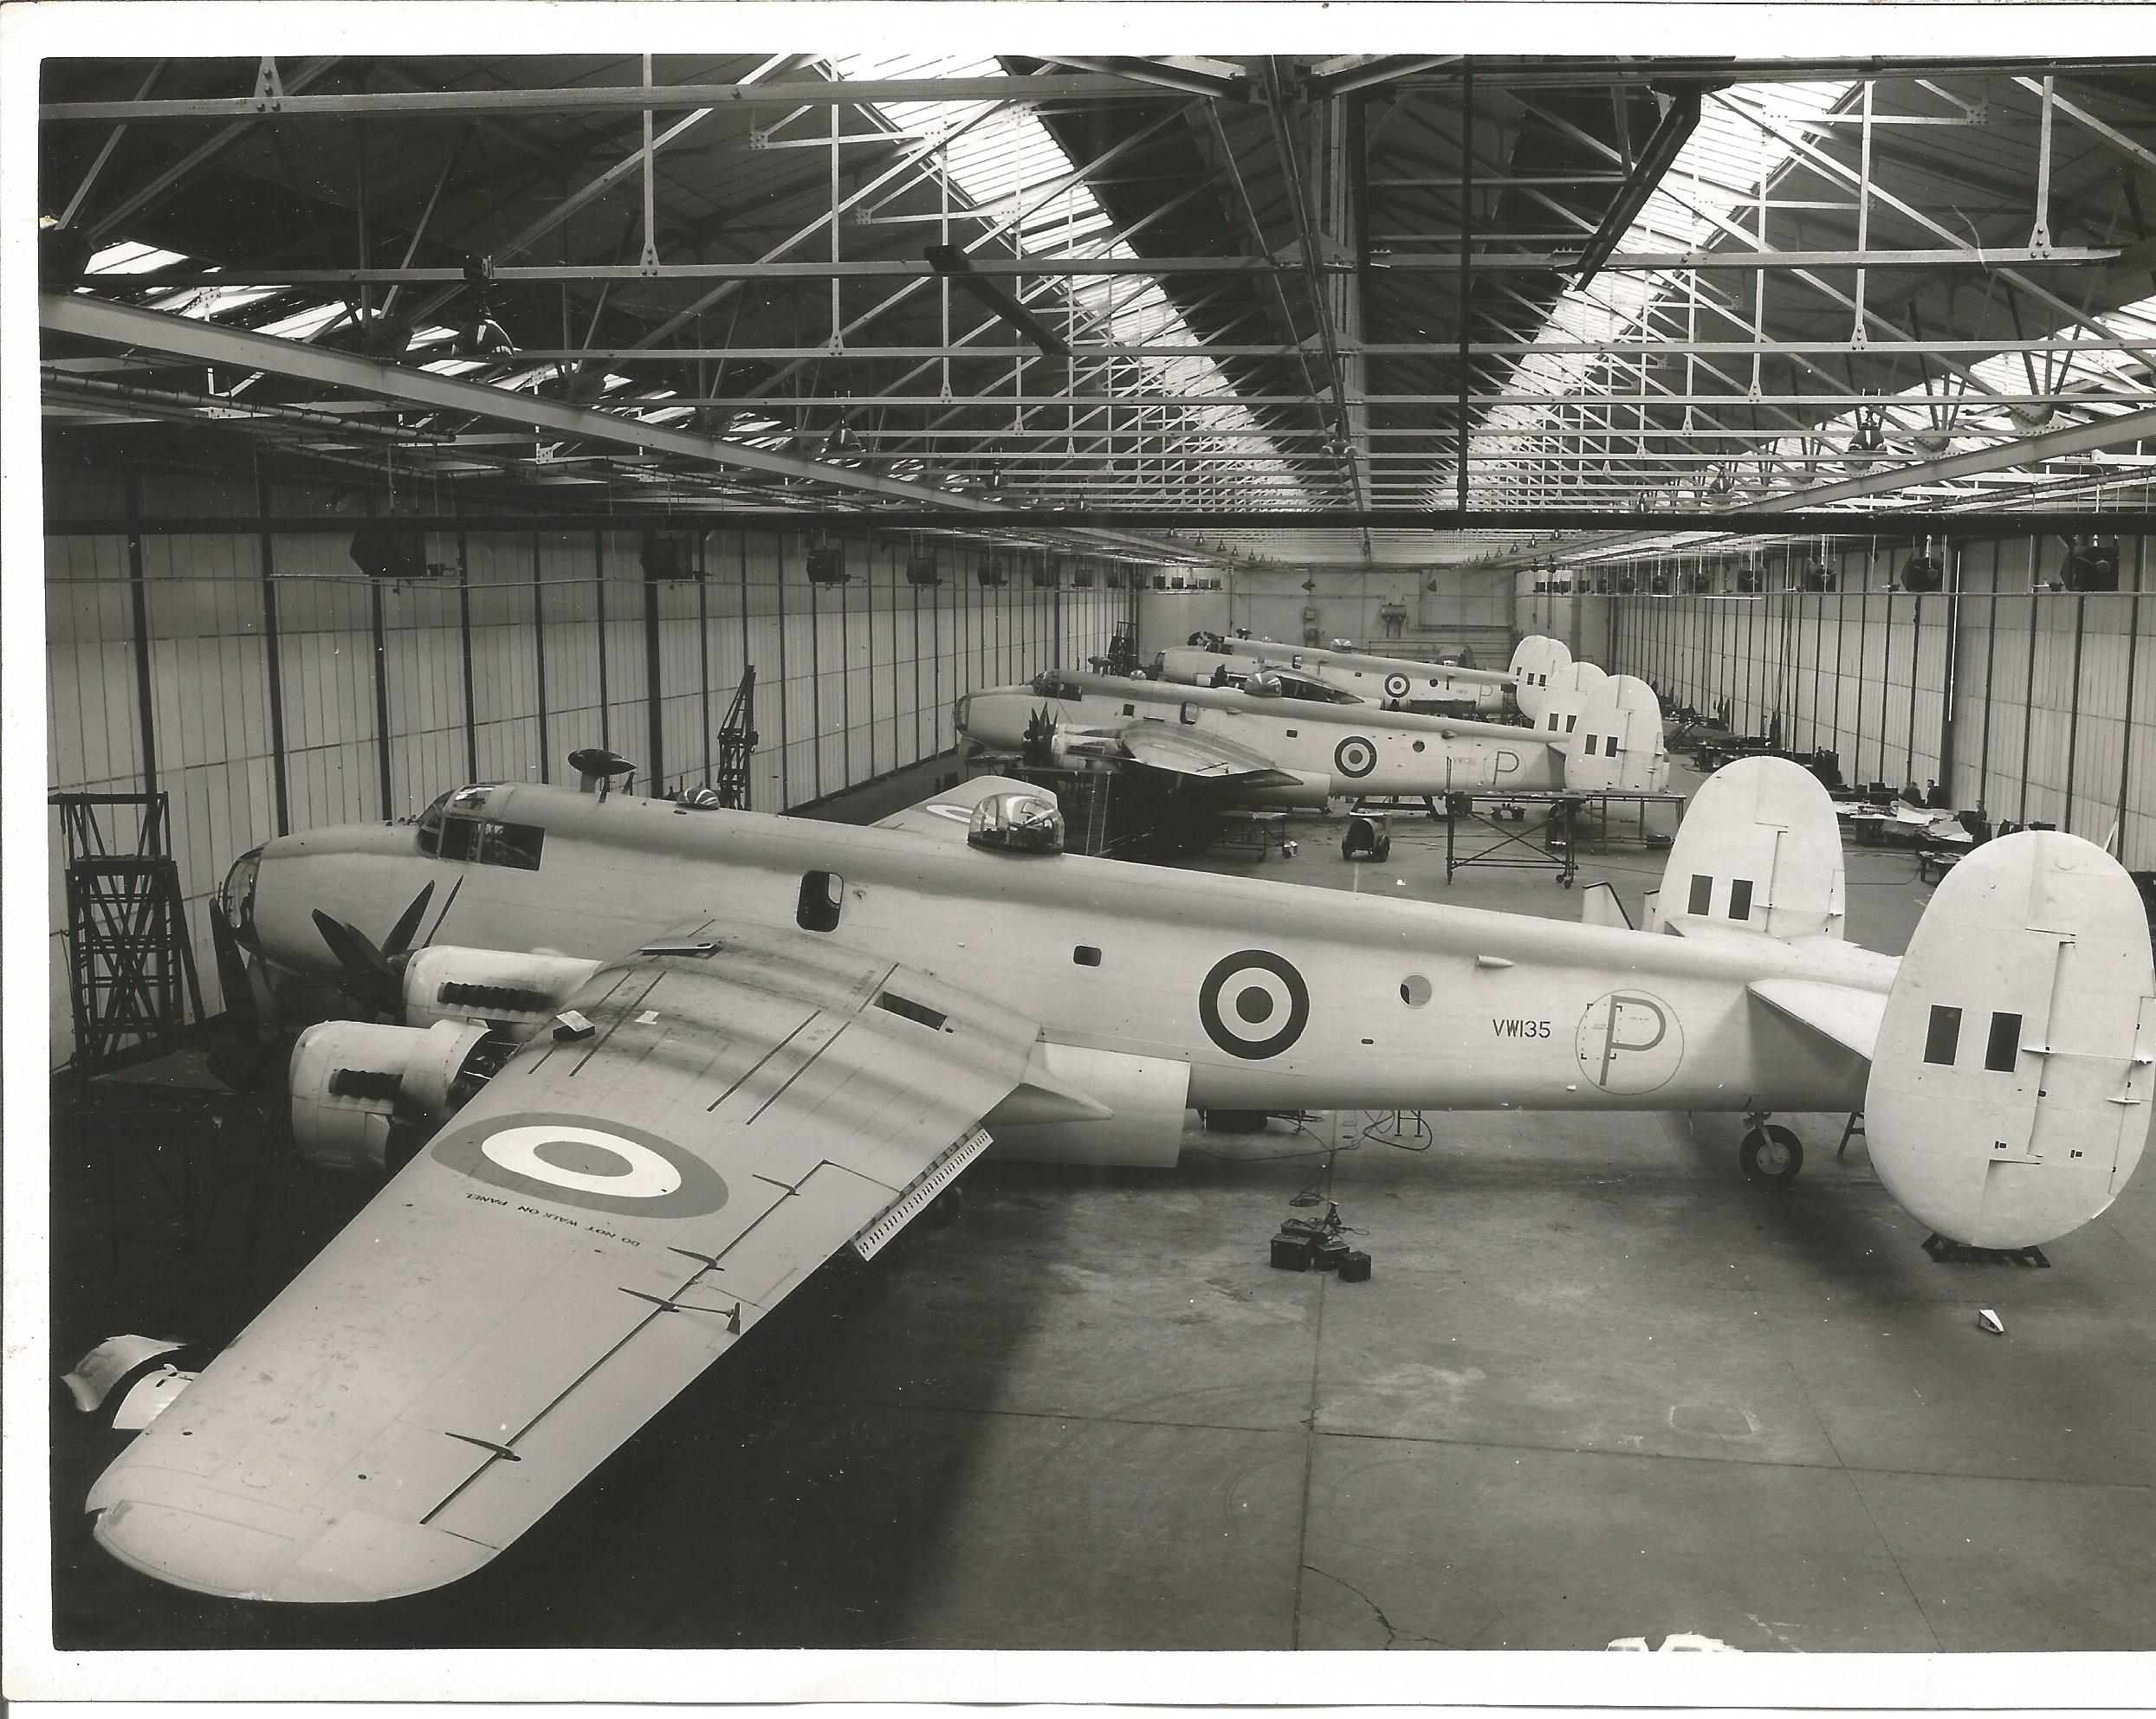 Aviation Shackleton collection includes to original 9x7 black and white photos dated 11. 5. 49 and a - Image 3 of 3